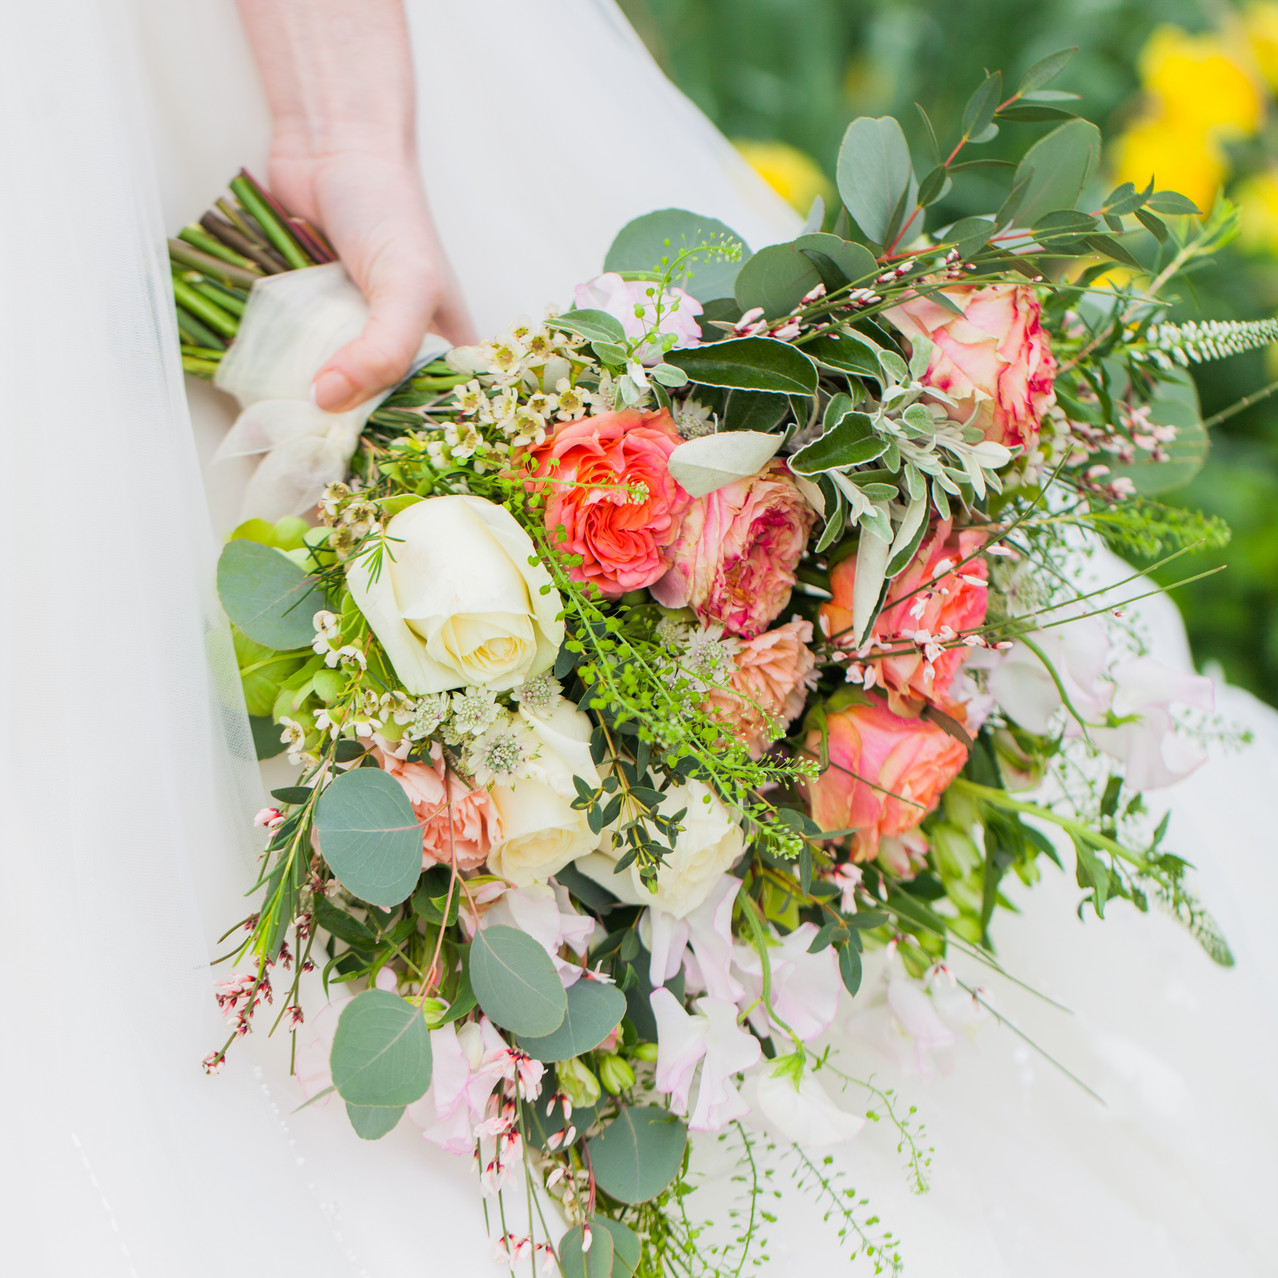 Spring Bridal Bouquet with Roses